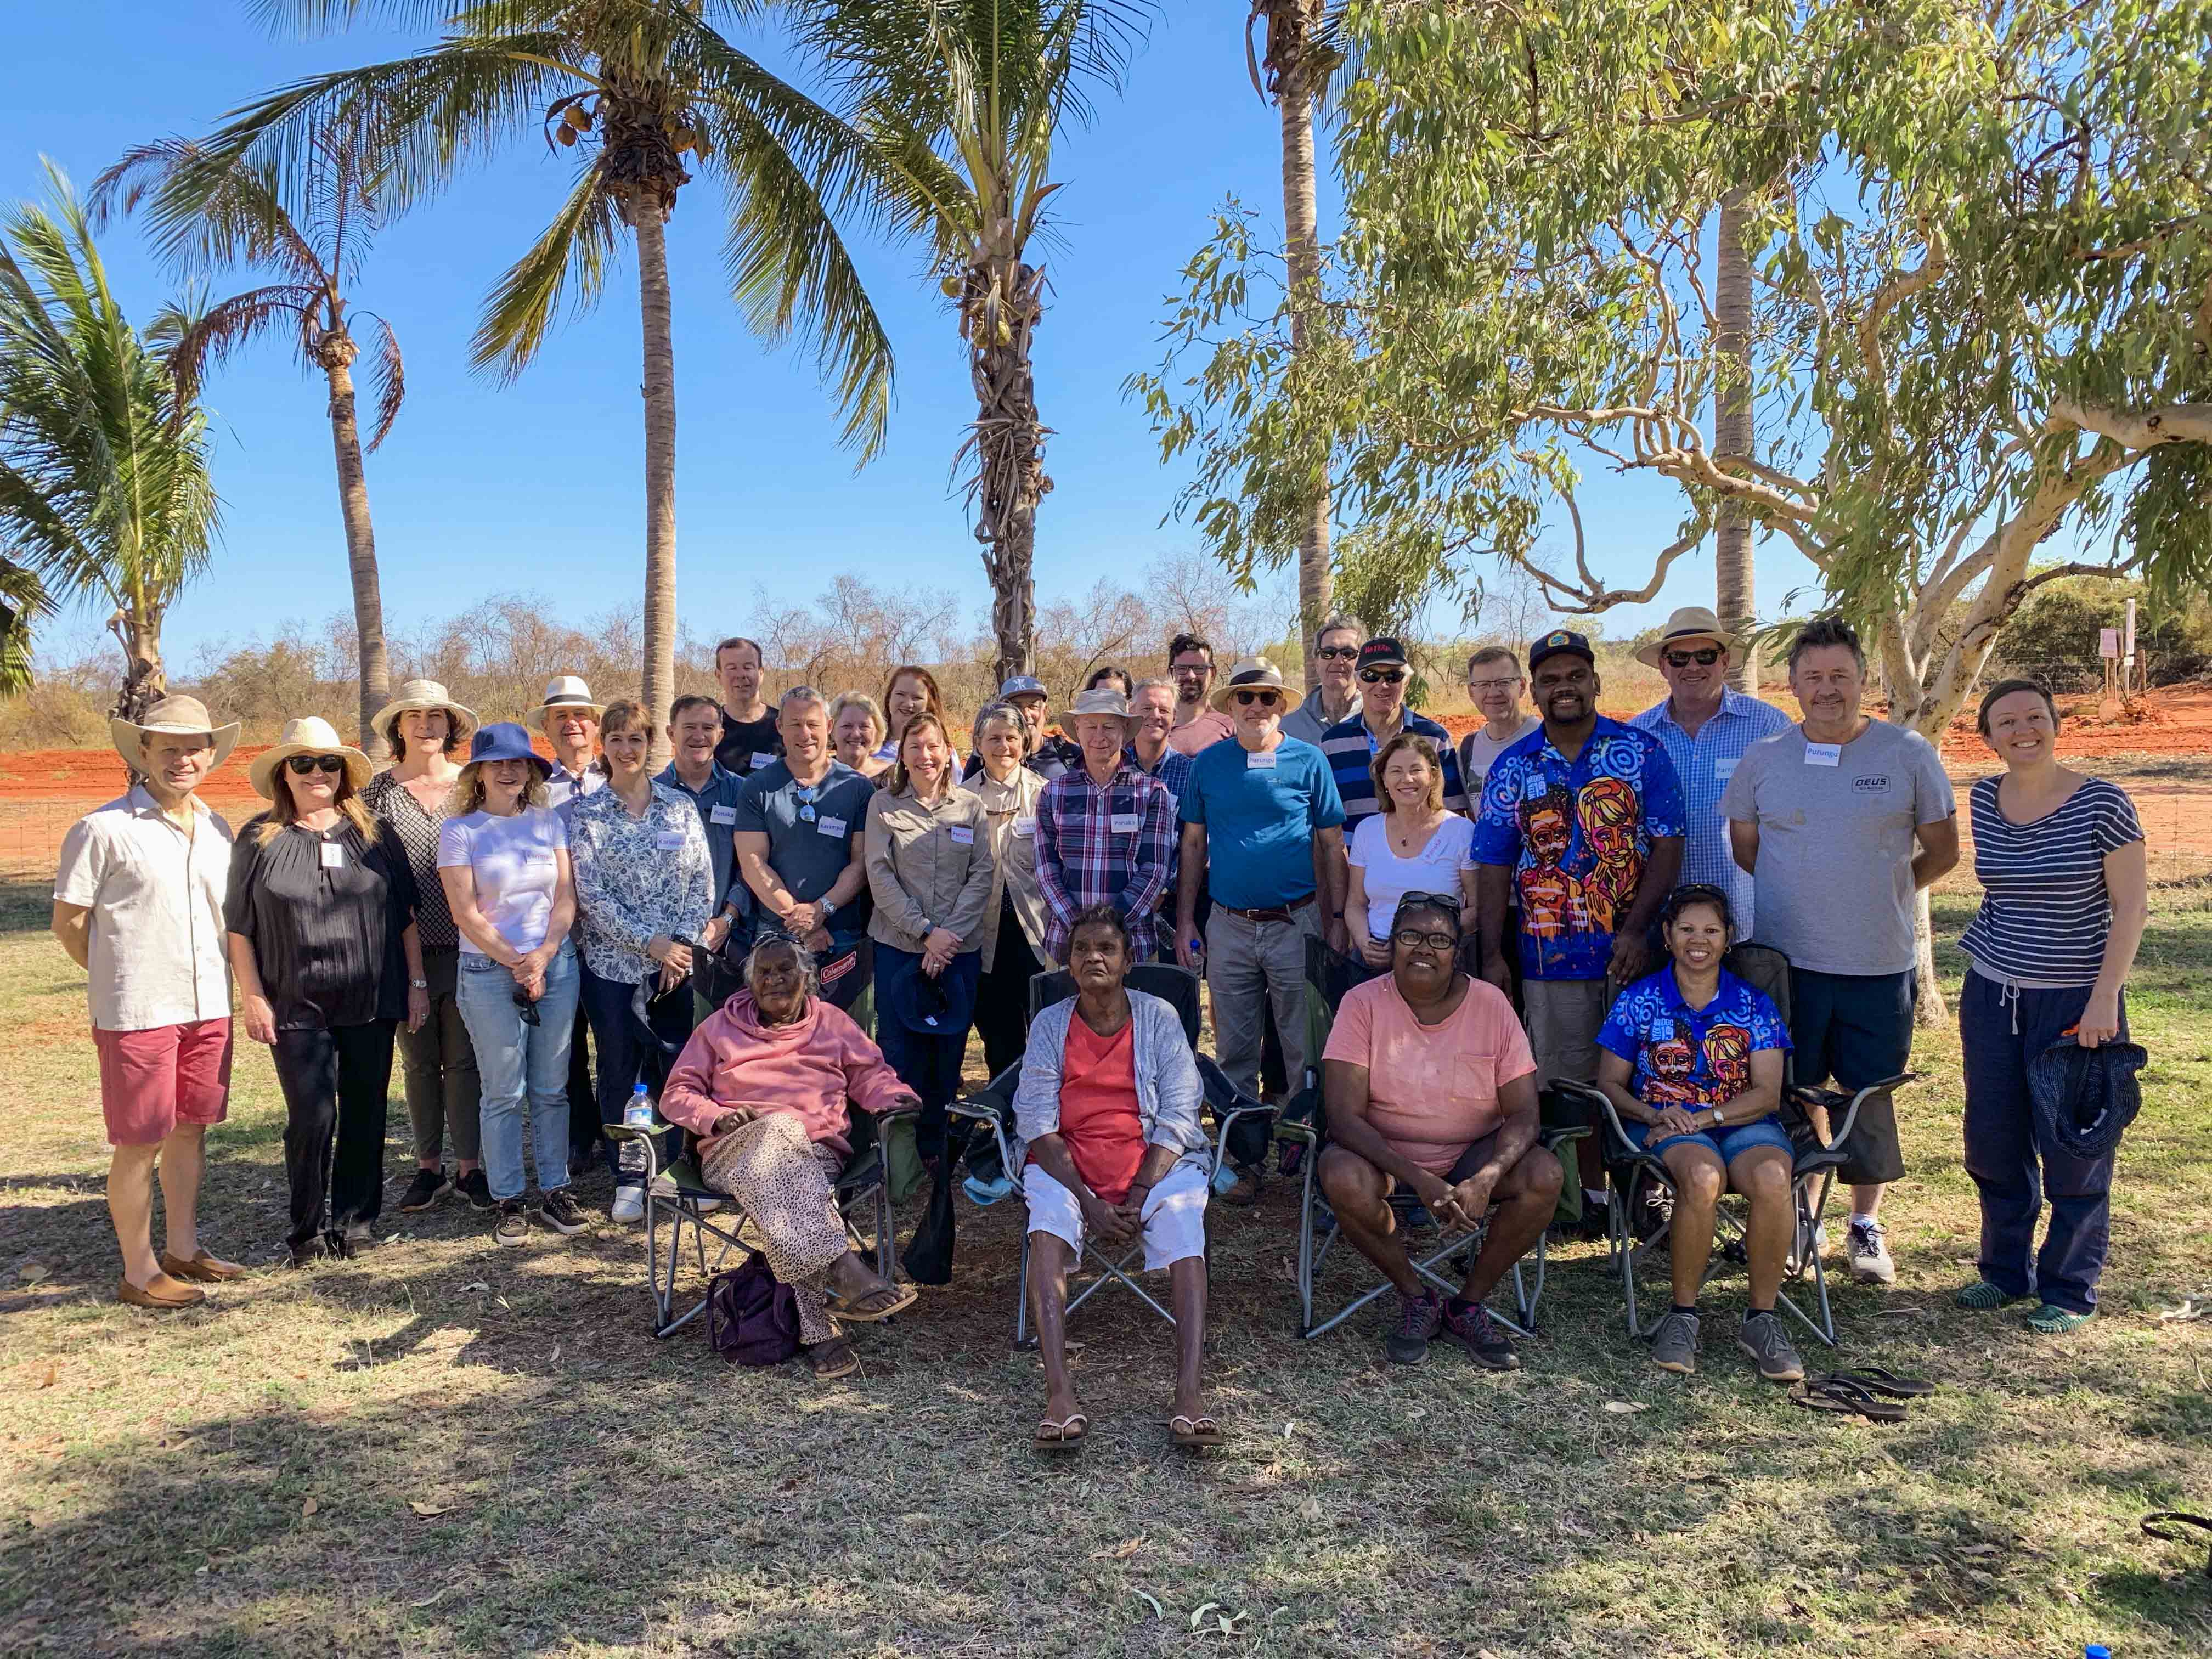 A three-day, cultural immersion program has taken senior judges from Western Australia's District and Supreme Courts into the heart of the Kimberley with an opportunity to meet with and hear directly about Aboriginal history, culture, language, country and family life. Photo: Supplied.